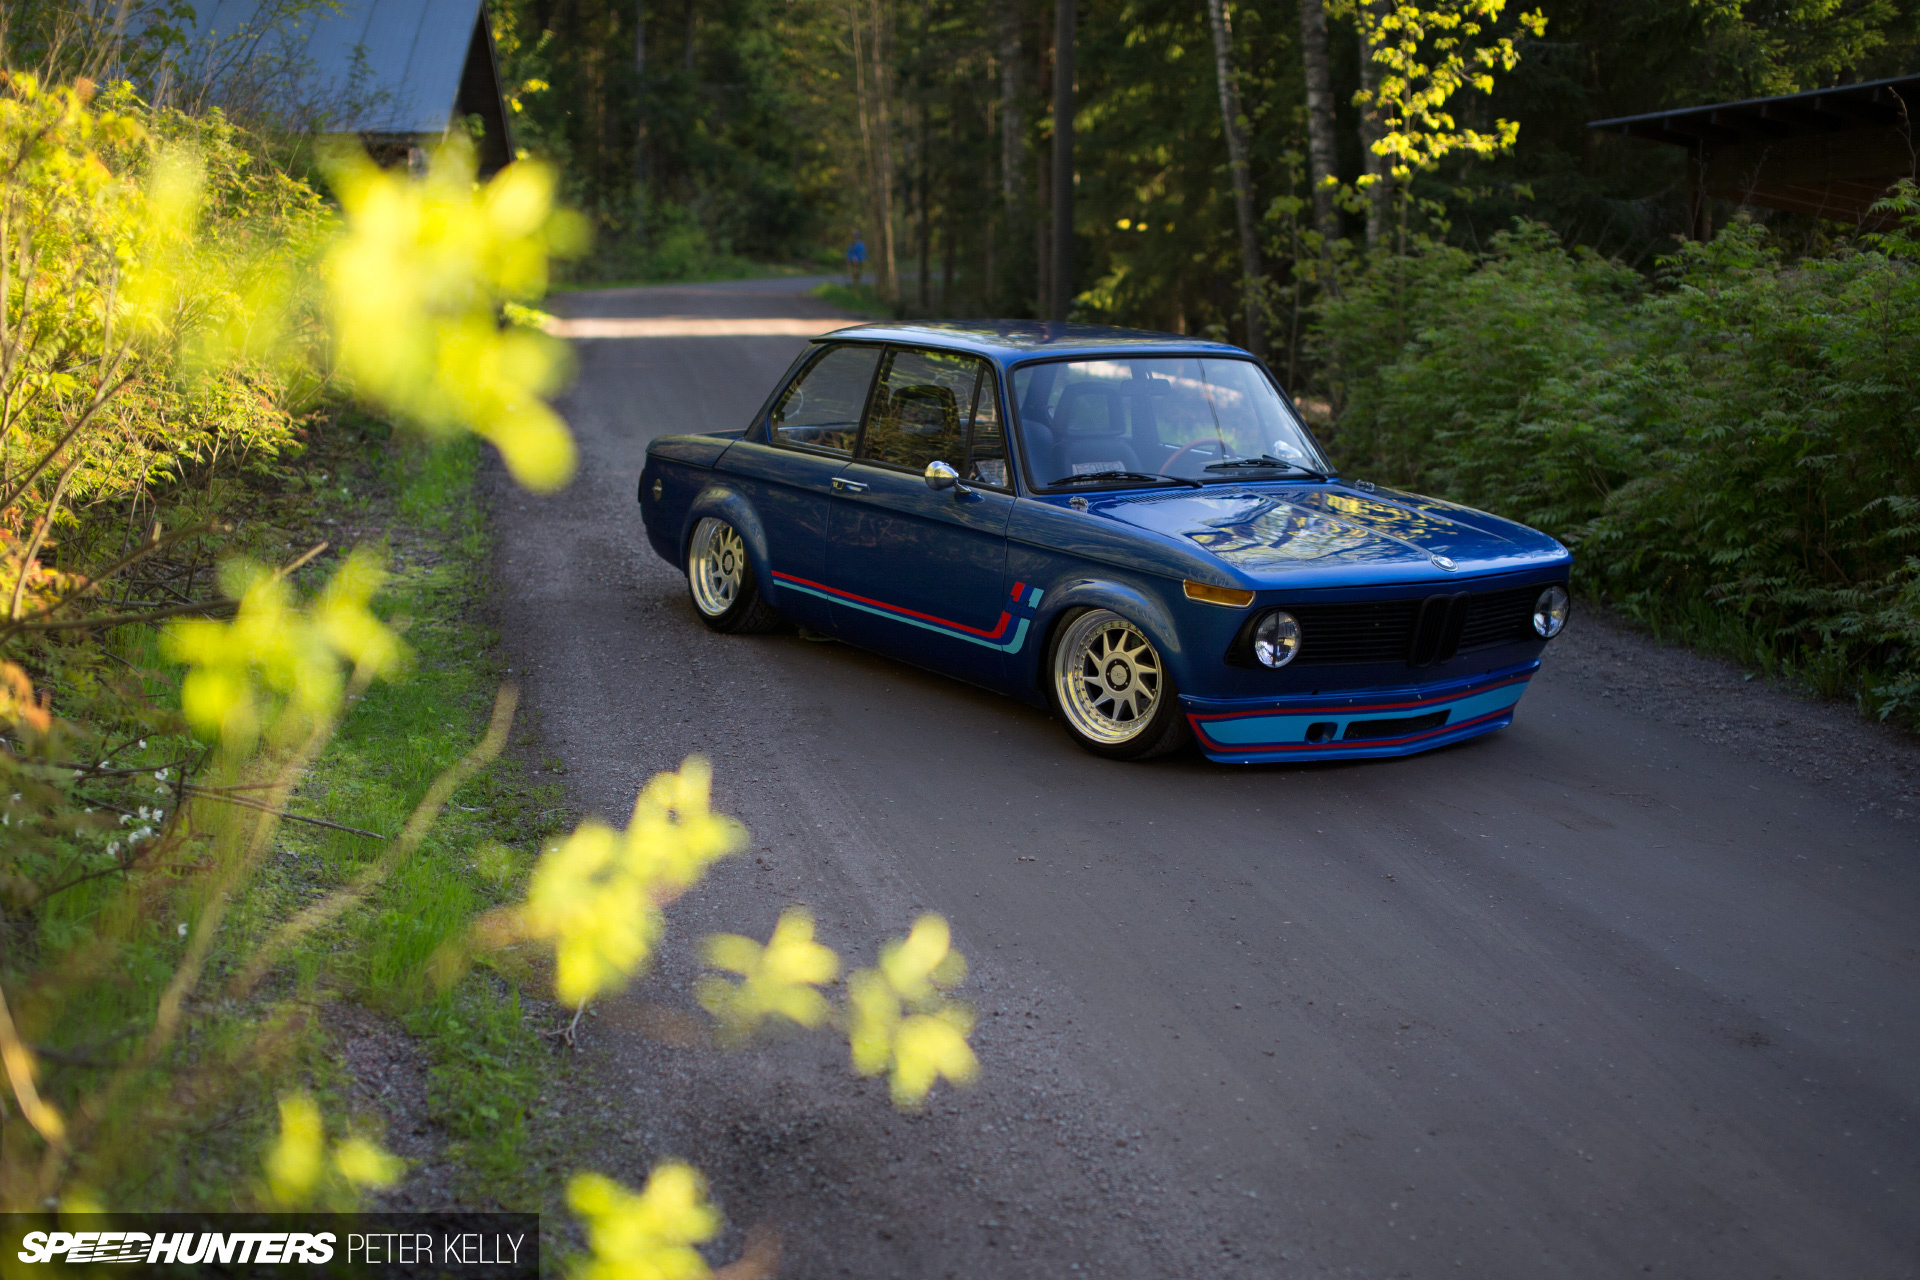 Temple Of Vtec >> Hidden Screams: A Classic BMW With VTEC Secrets - Speedhunters